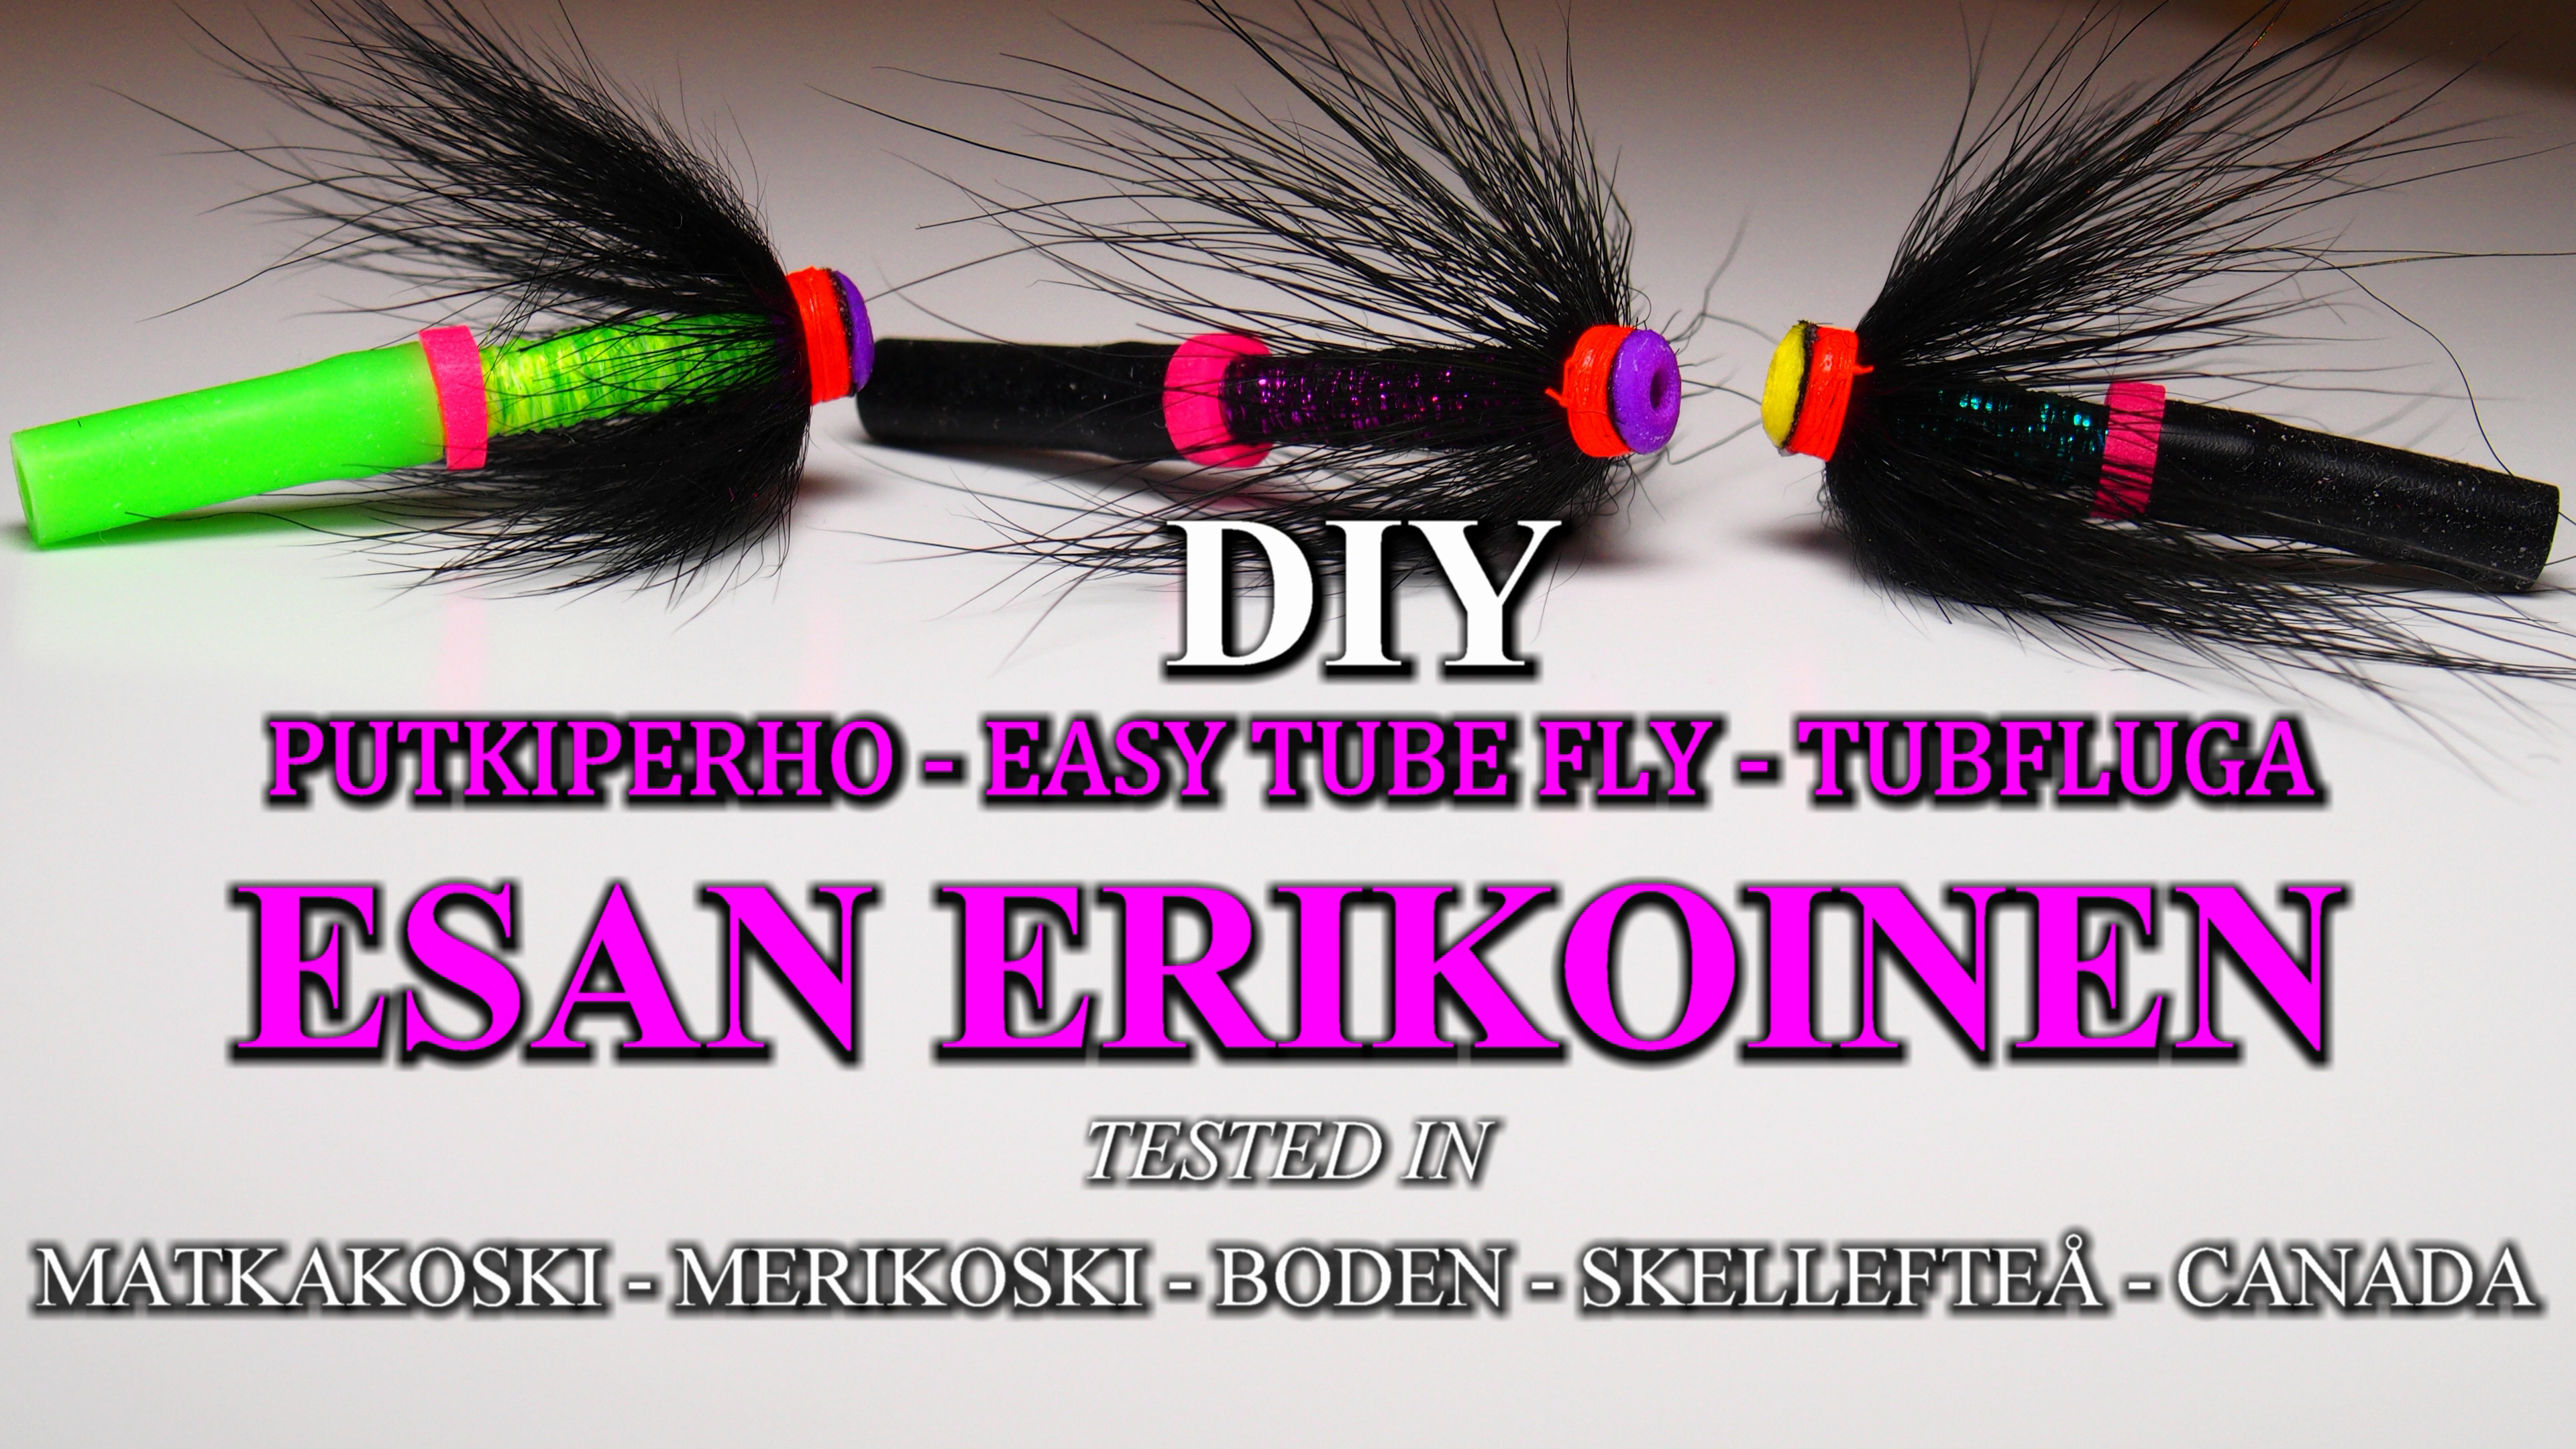 Esan Erikoinen Tube Fly - Putkiperhot - Tubfluga. This RiverBug 2.0 tube fly is super easy to make and highly good for salmon and trout! #tubfluga #tubefly #putkiperhot #finnlures #kettuperho #riverbug #matkakoski #DIY